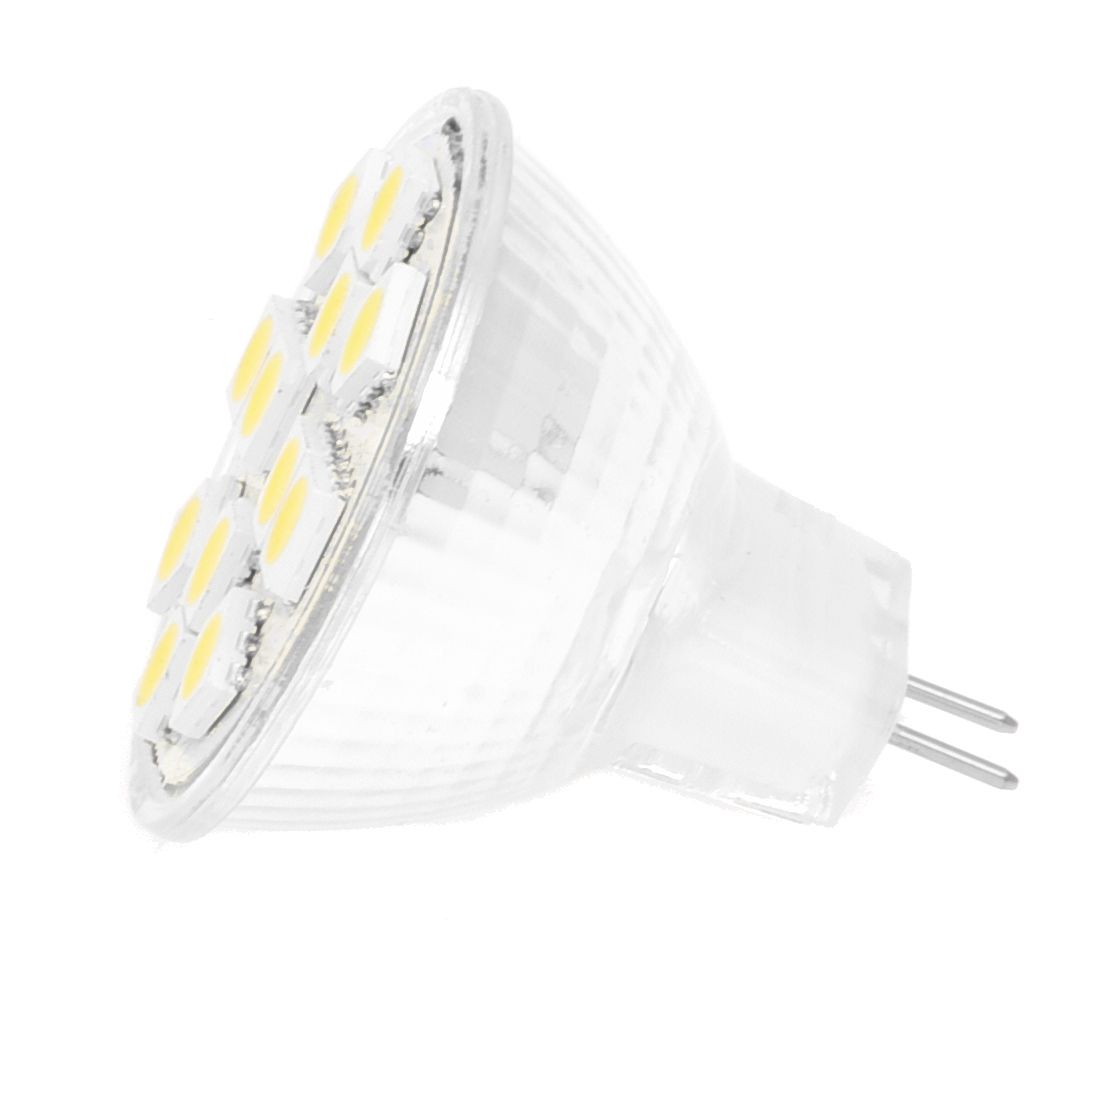 2W MR11 GU4 120-144LM LED Bulb 12 5050 SMD White Lamp